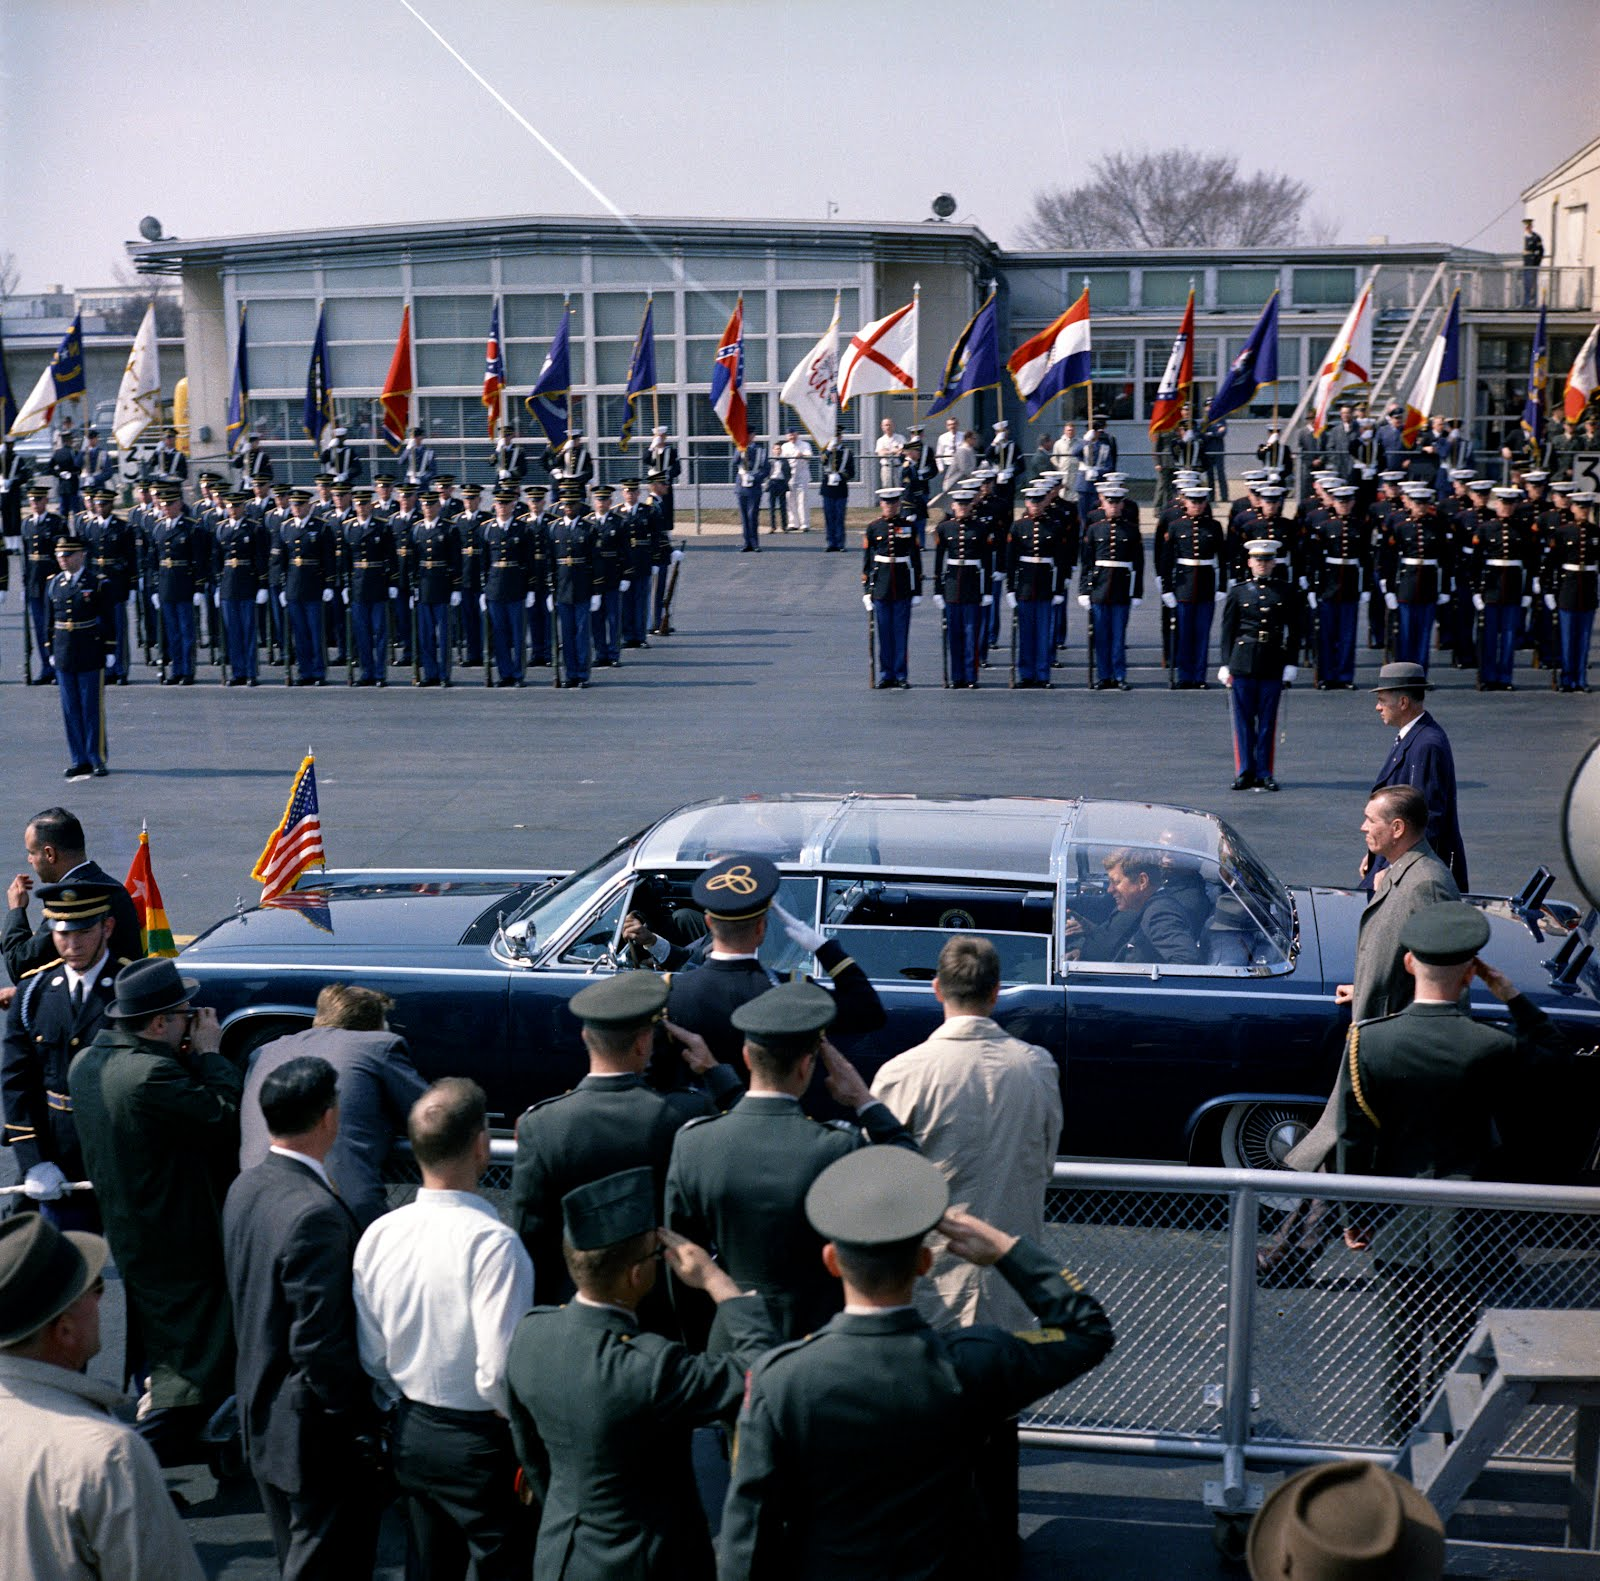 3/20/62: the bubbletop JFK supposedly hated...and agents beside the limo